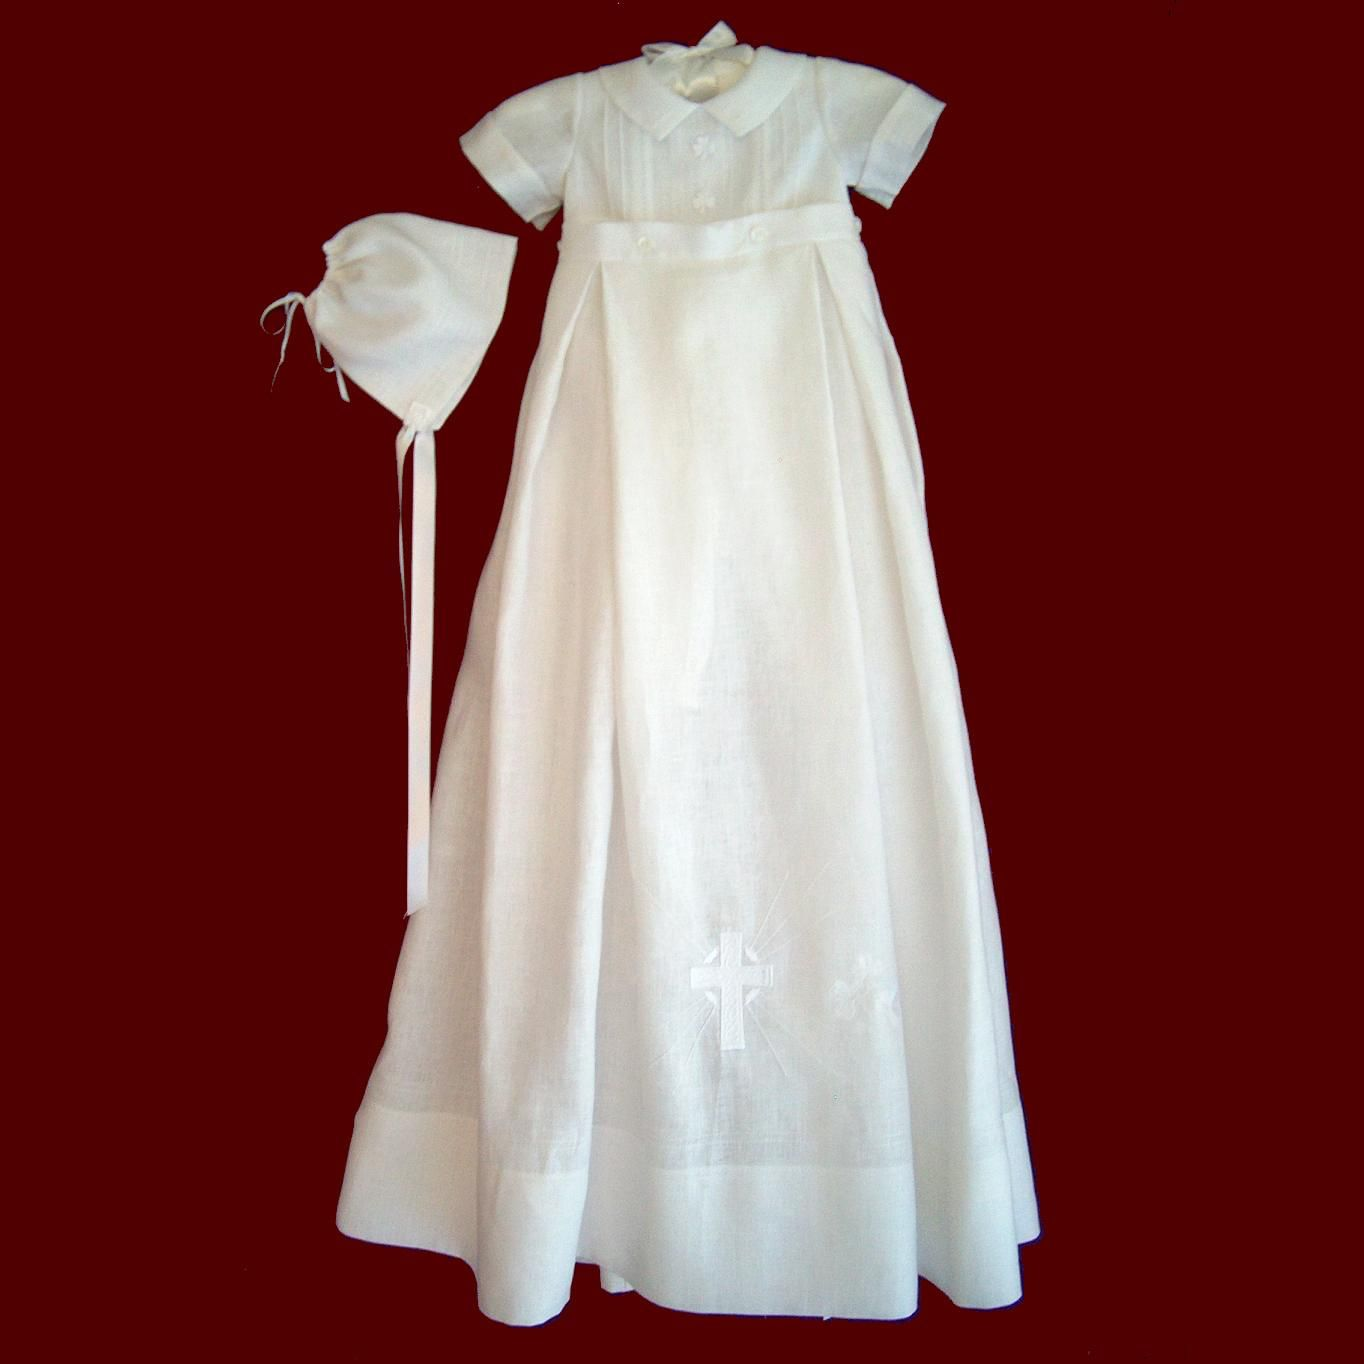 Christening Gowns From Wedding Dresses: Irish+Christening+Gowns+for+Boys